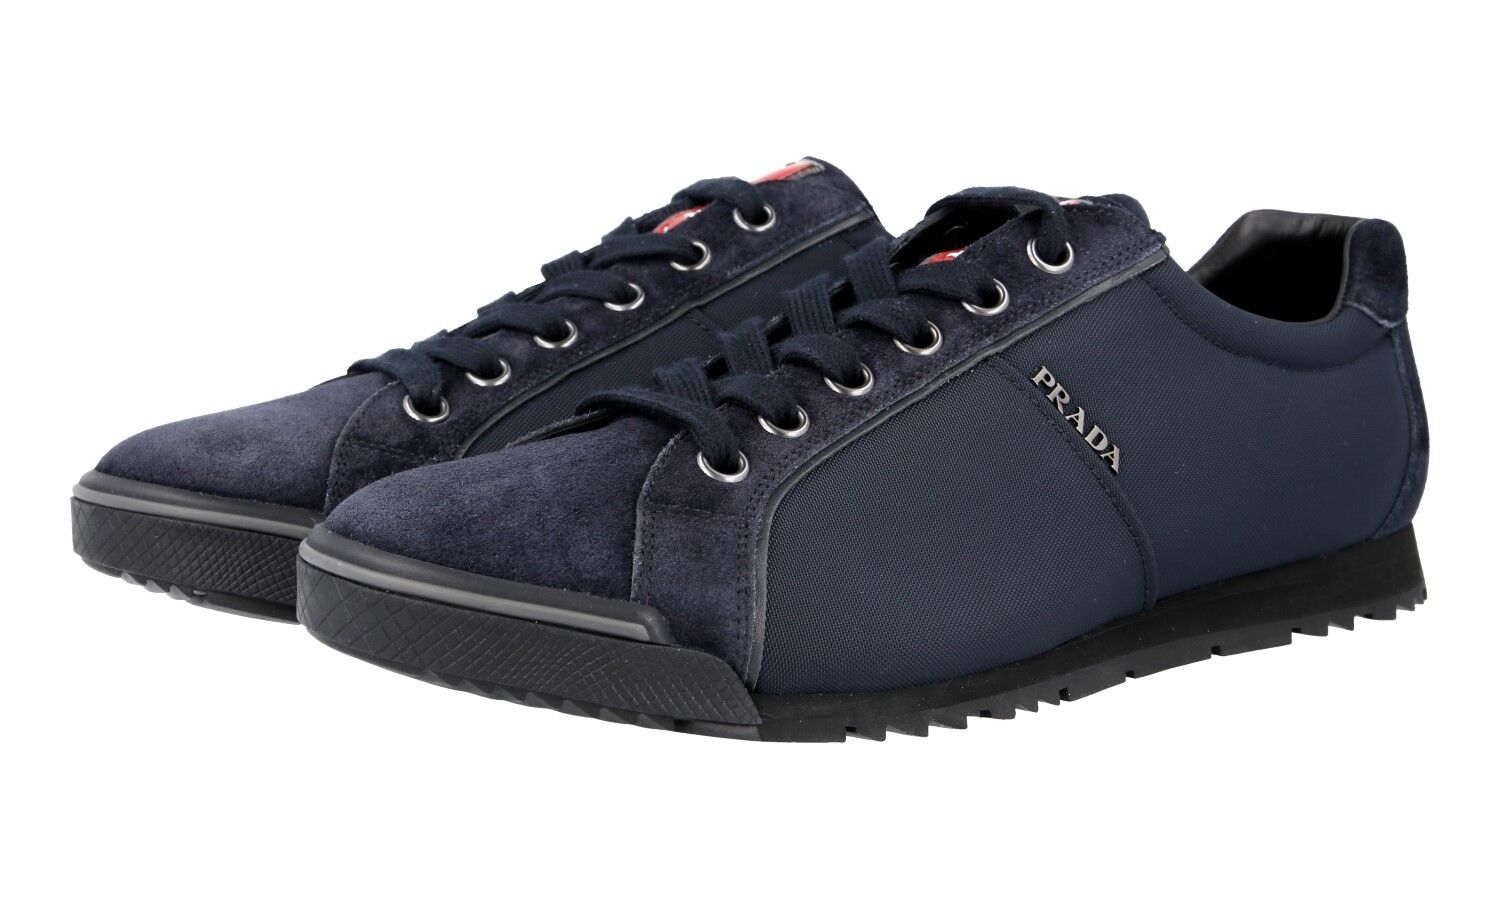 AUTH PRADA TRAINERS SHOES 4E2719 blueE SUEDE + NYLON NEW 10 44 44,5